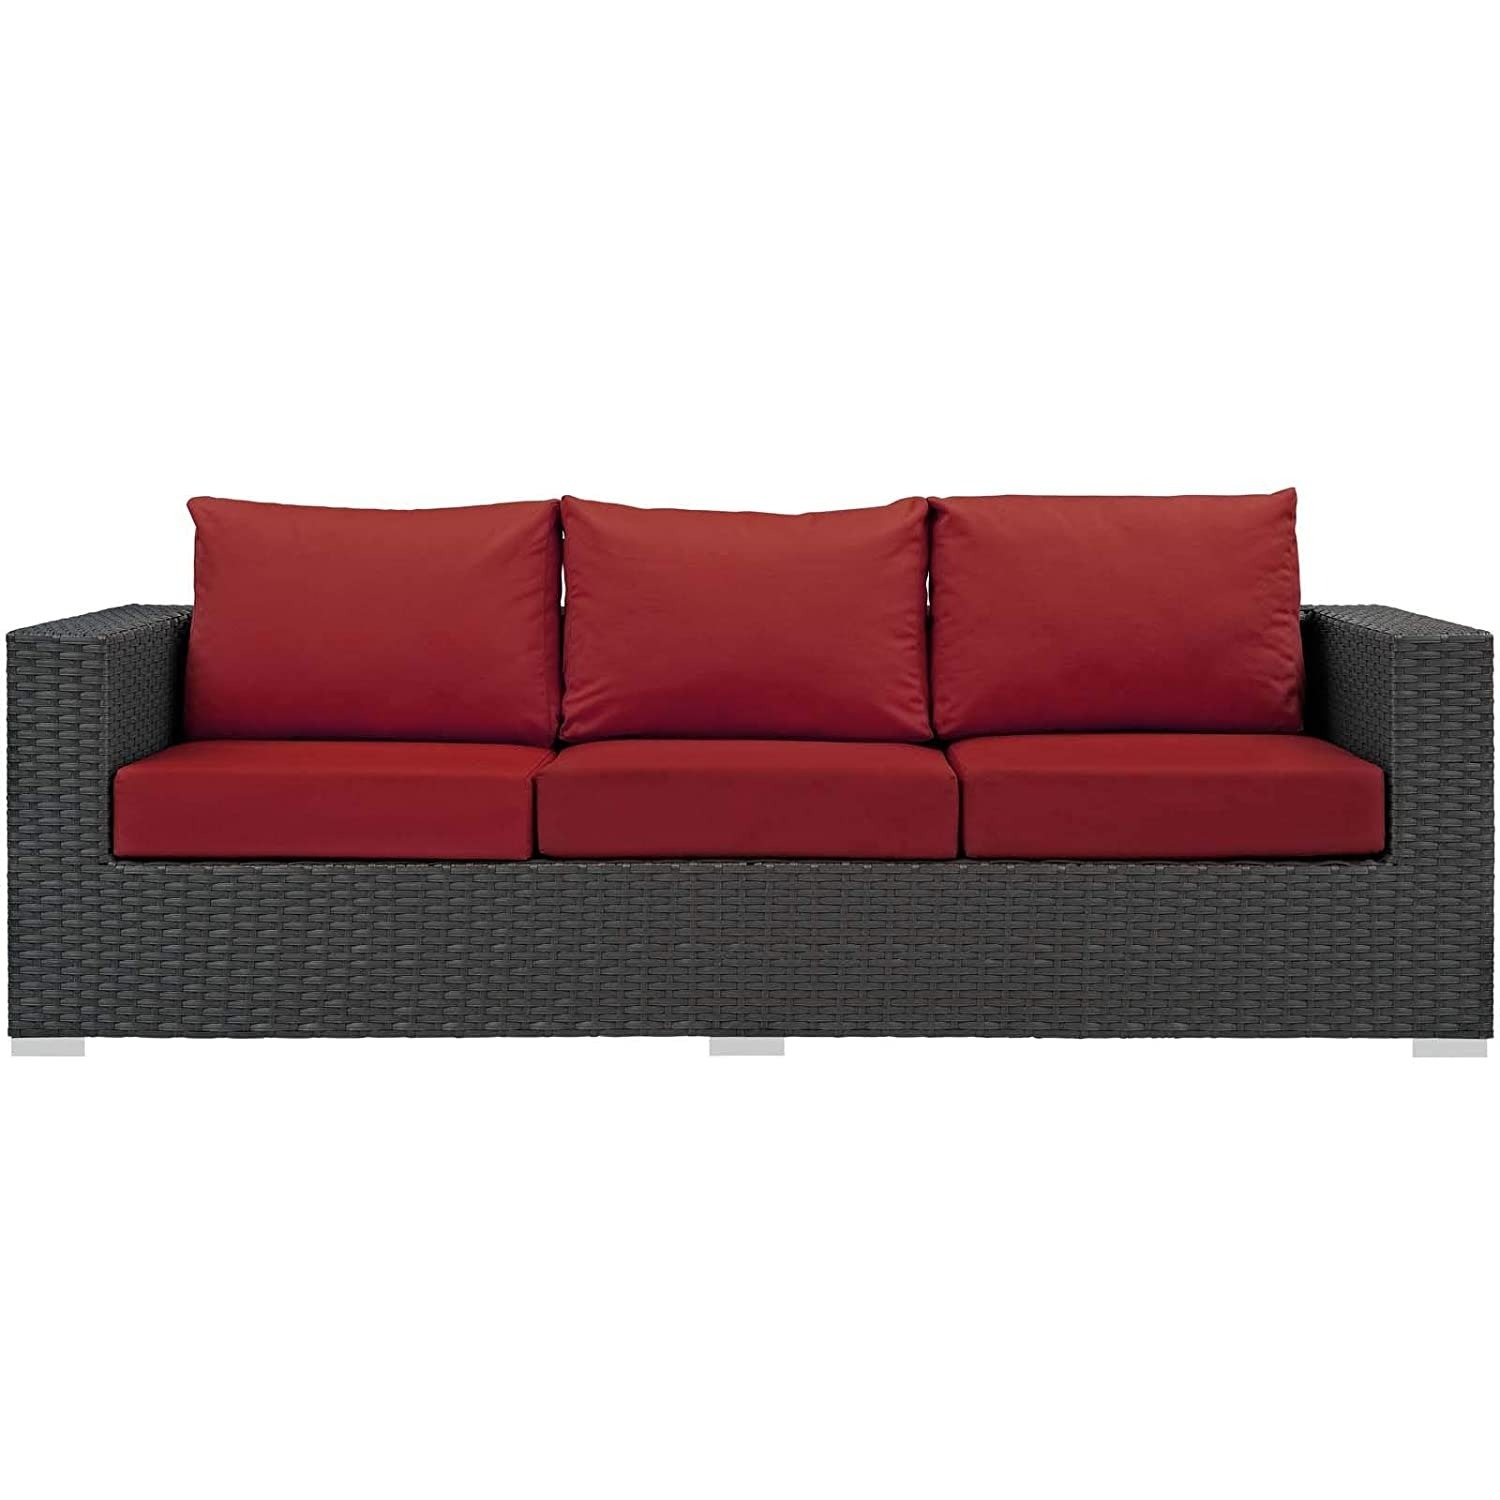 Outdoor Sofa In Rattan Weave Finish W/ Red Cushion - image-0